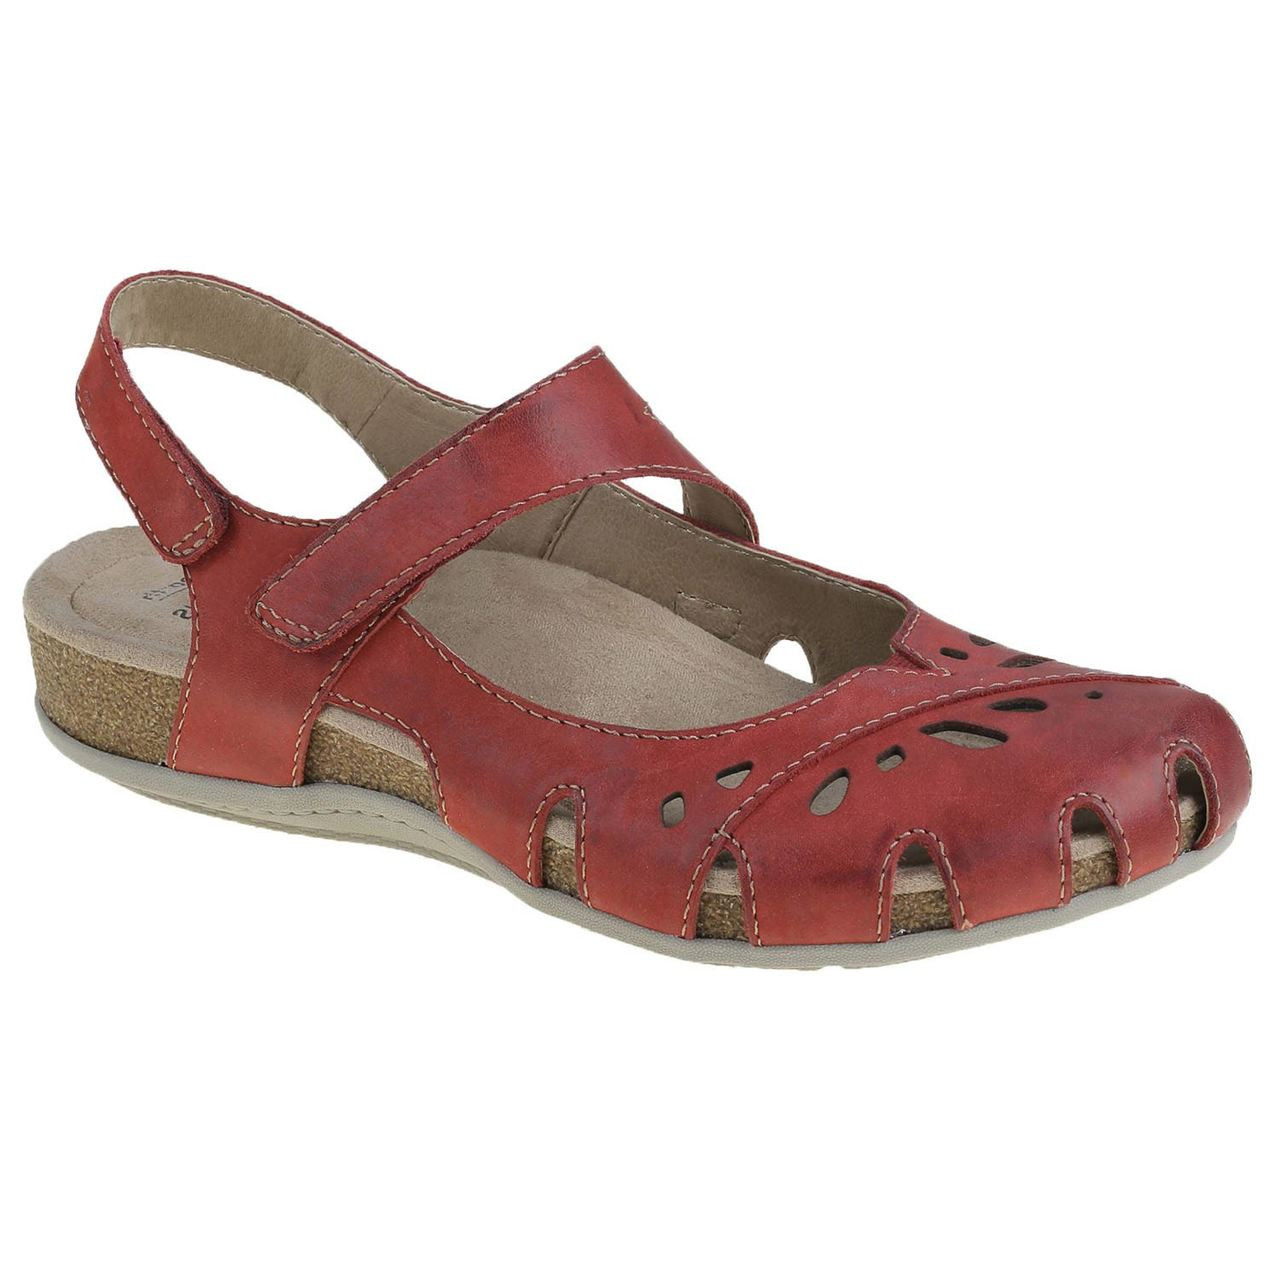 70c410897 Earth Origins Bosk Benji Women Shoes~RED*7206360WVLE - Boston Store